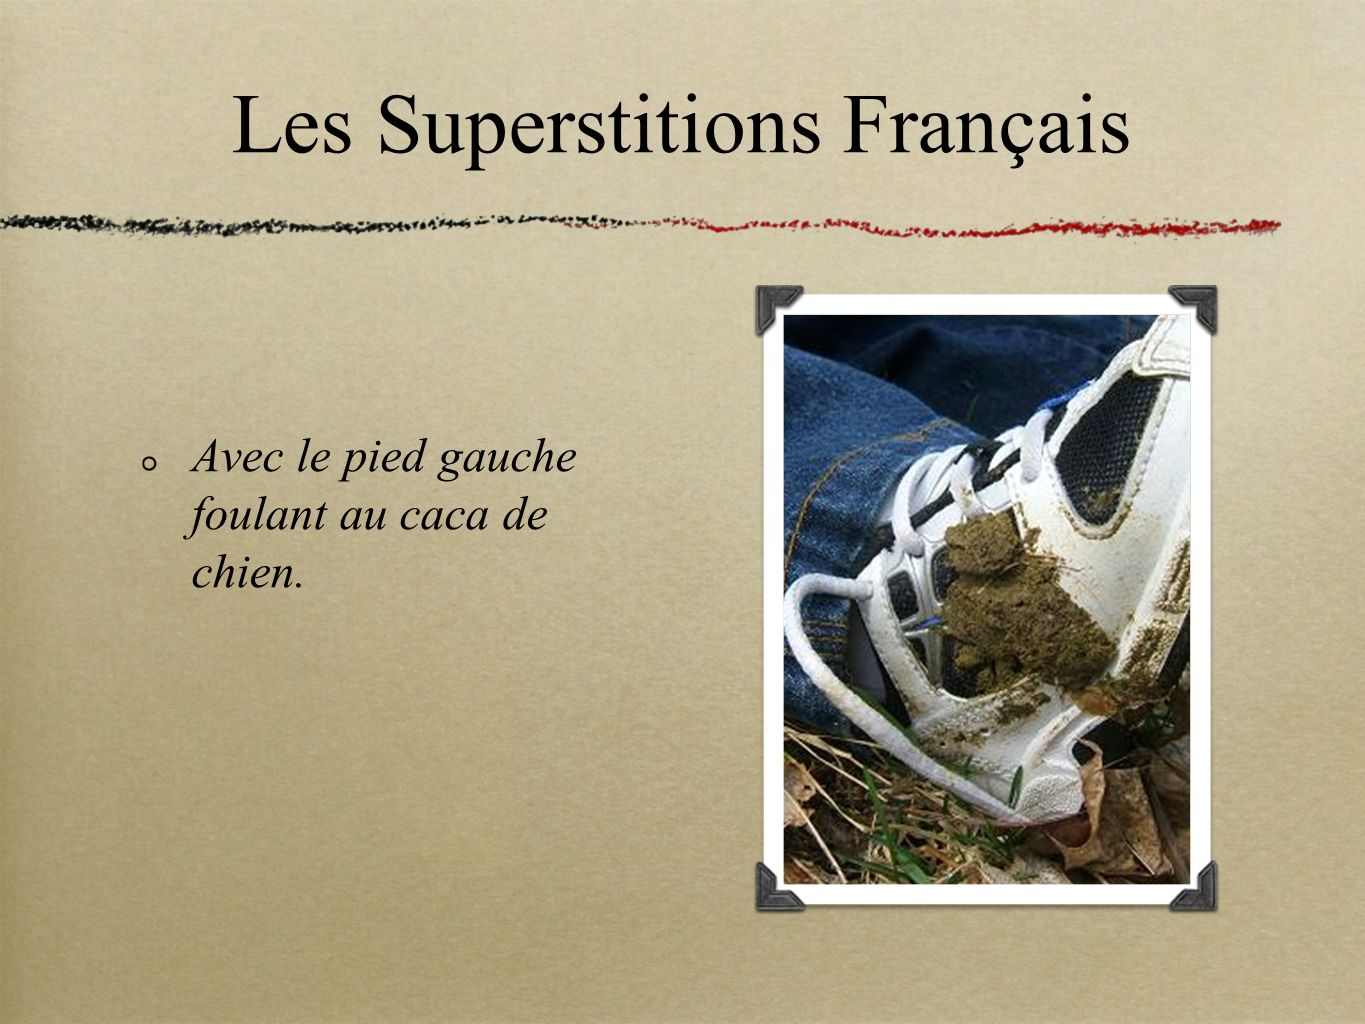 Les Superstitions Français